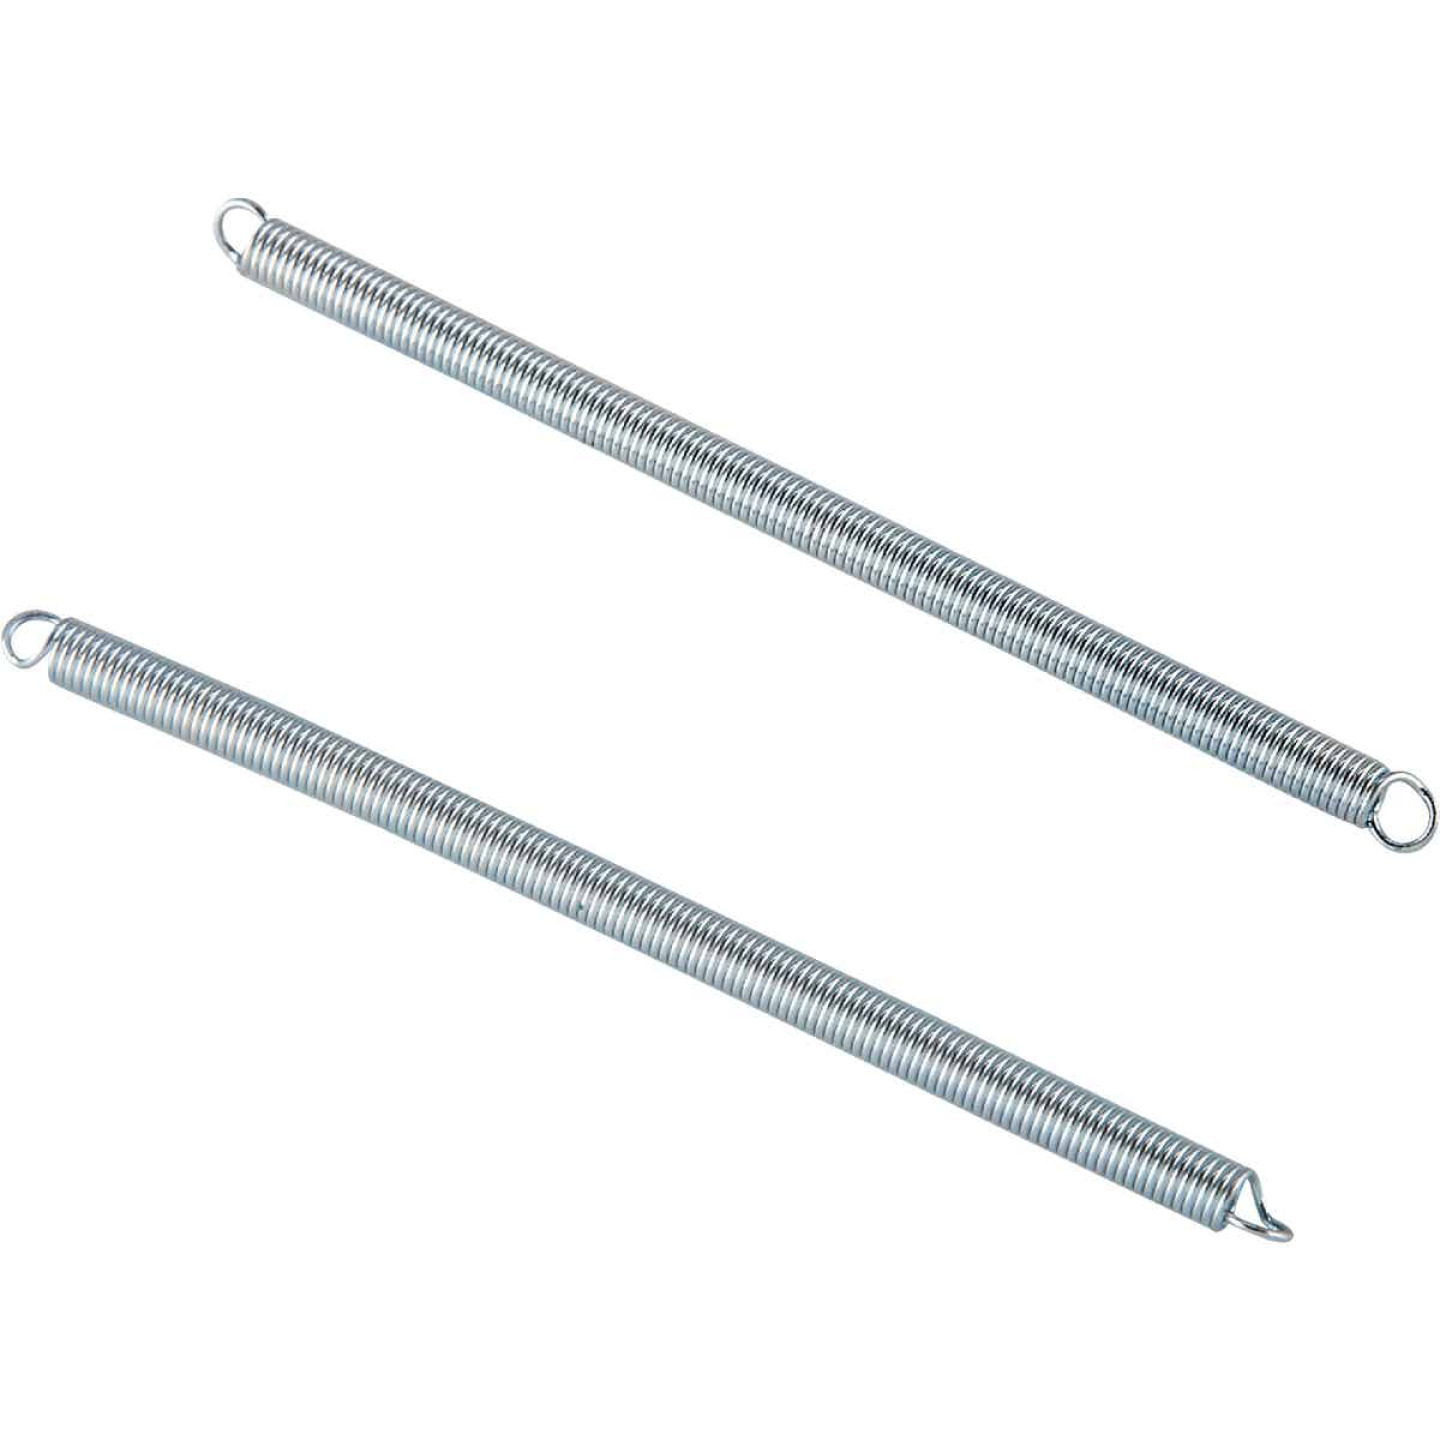 Century Spring 10-1/4 In. x 7/16 In. Extension Spring (1 Count) Image 1